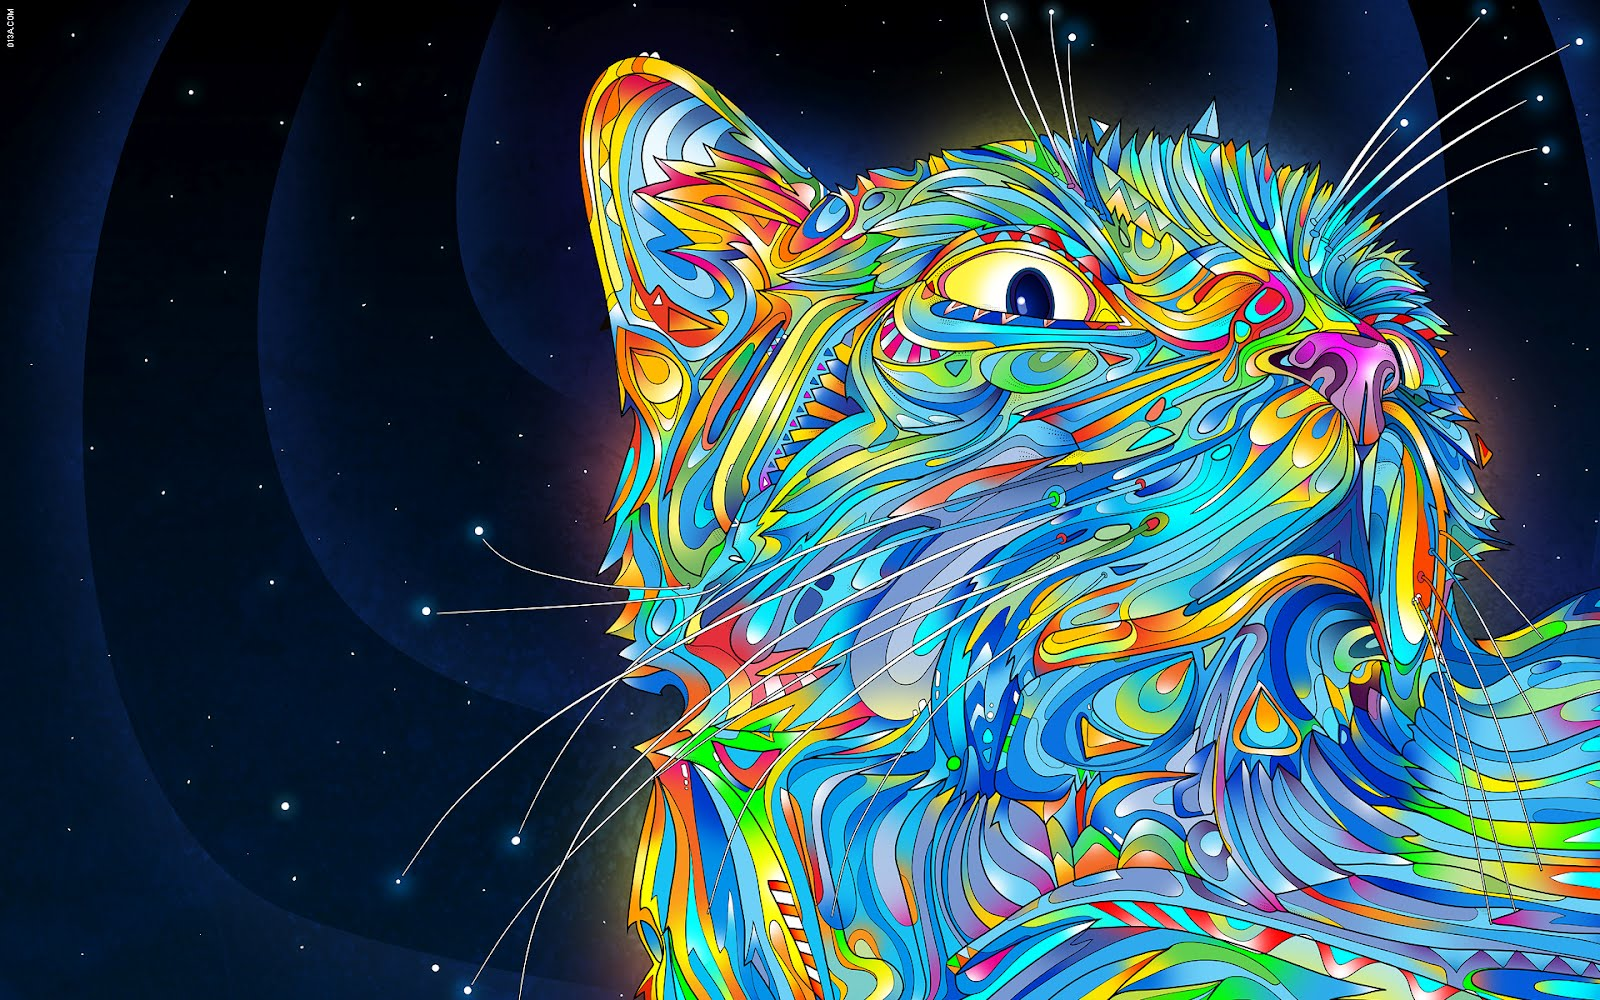 Trippy Backgrounds Hd 16001000 125061 HD Wallpaper Res 1600x1000 1600x1000